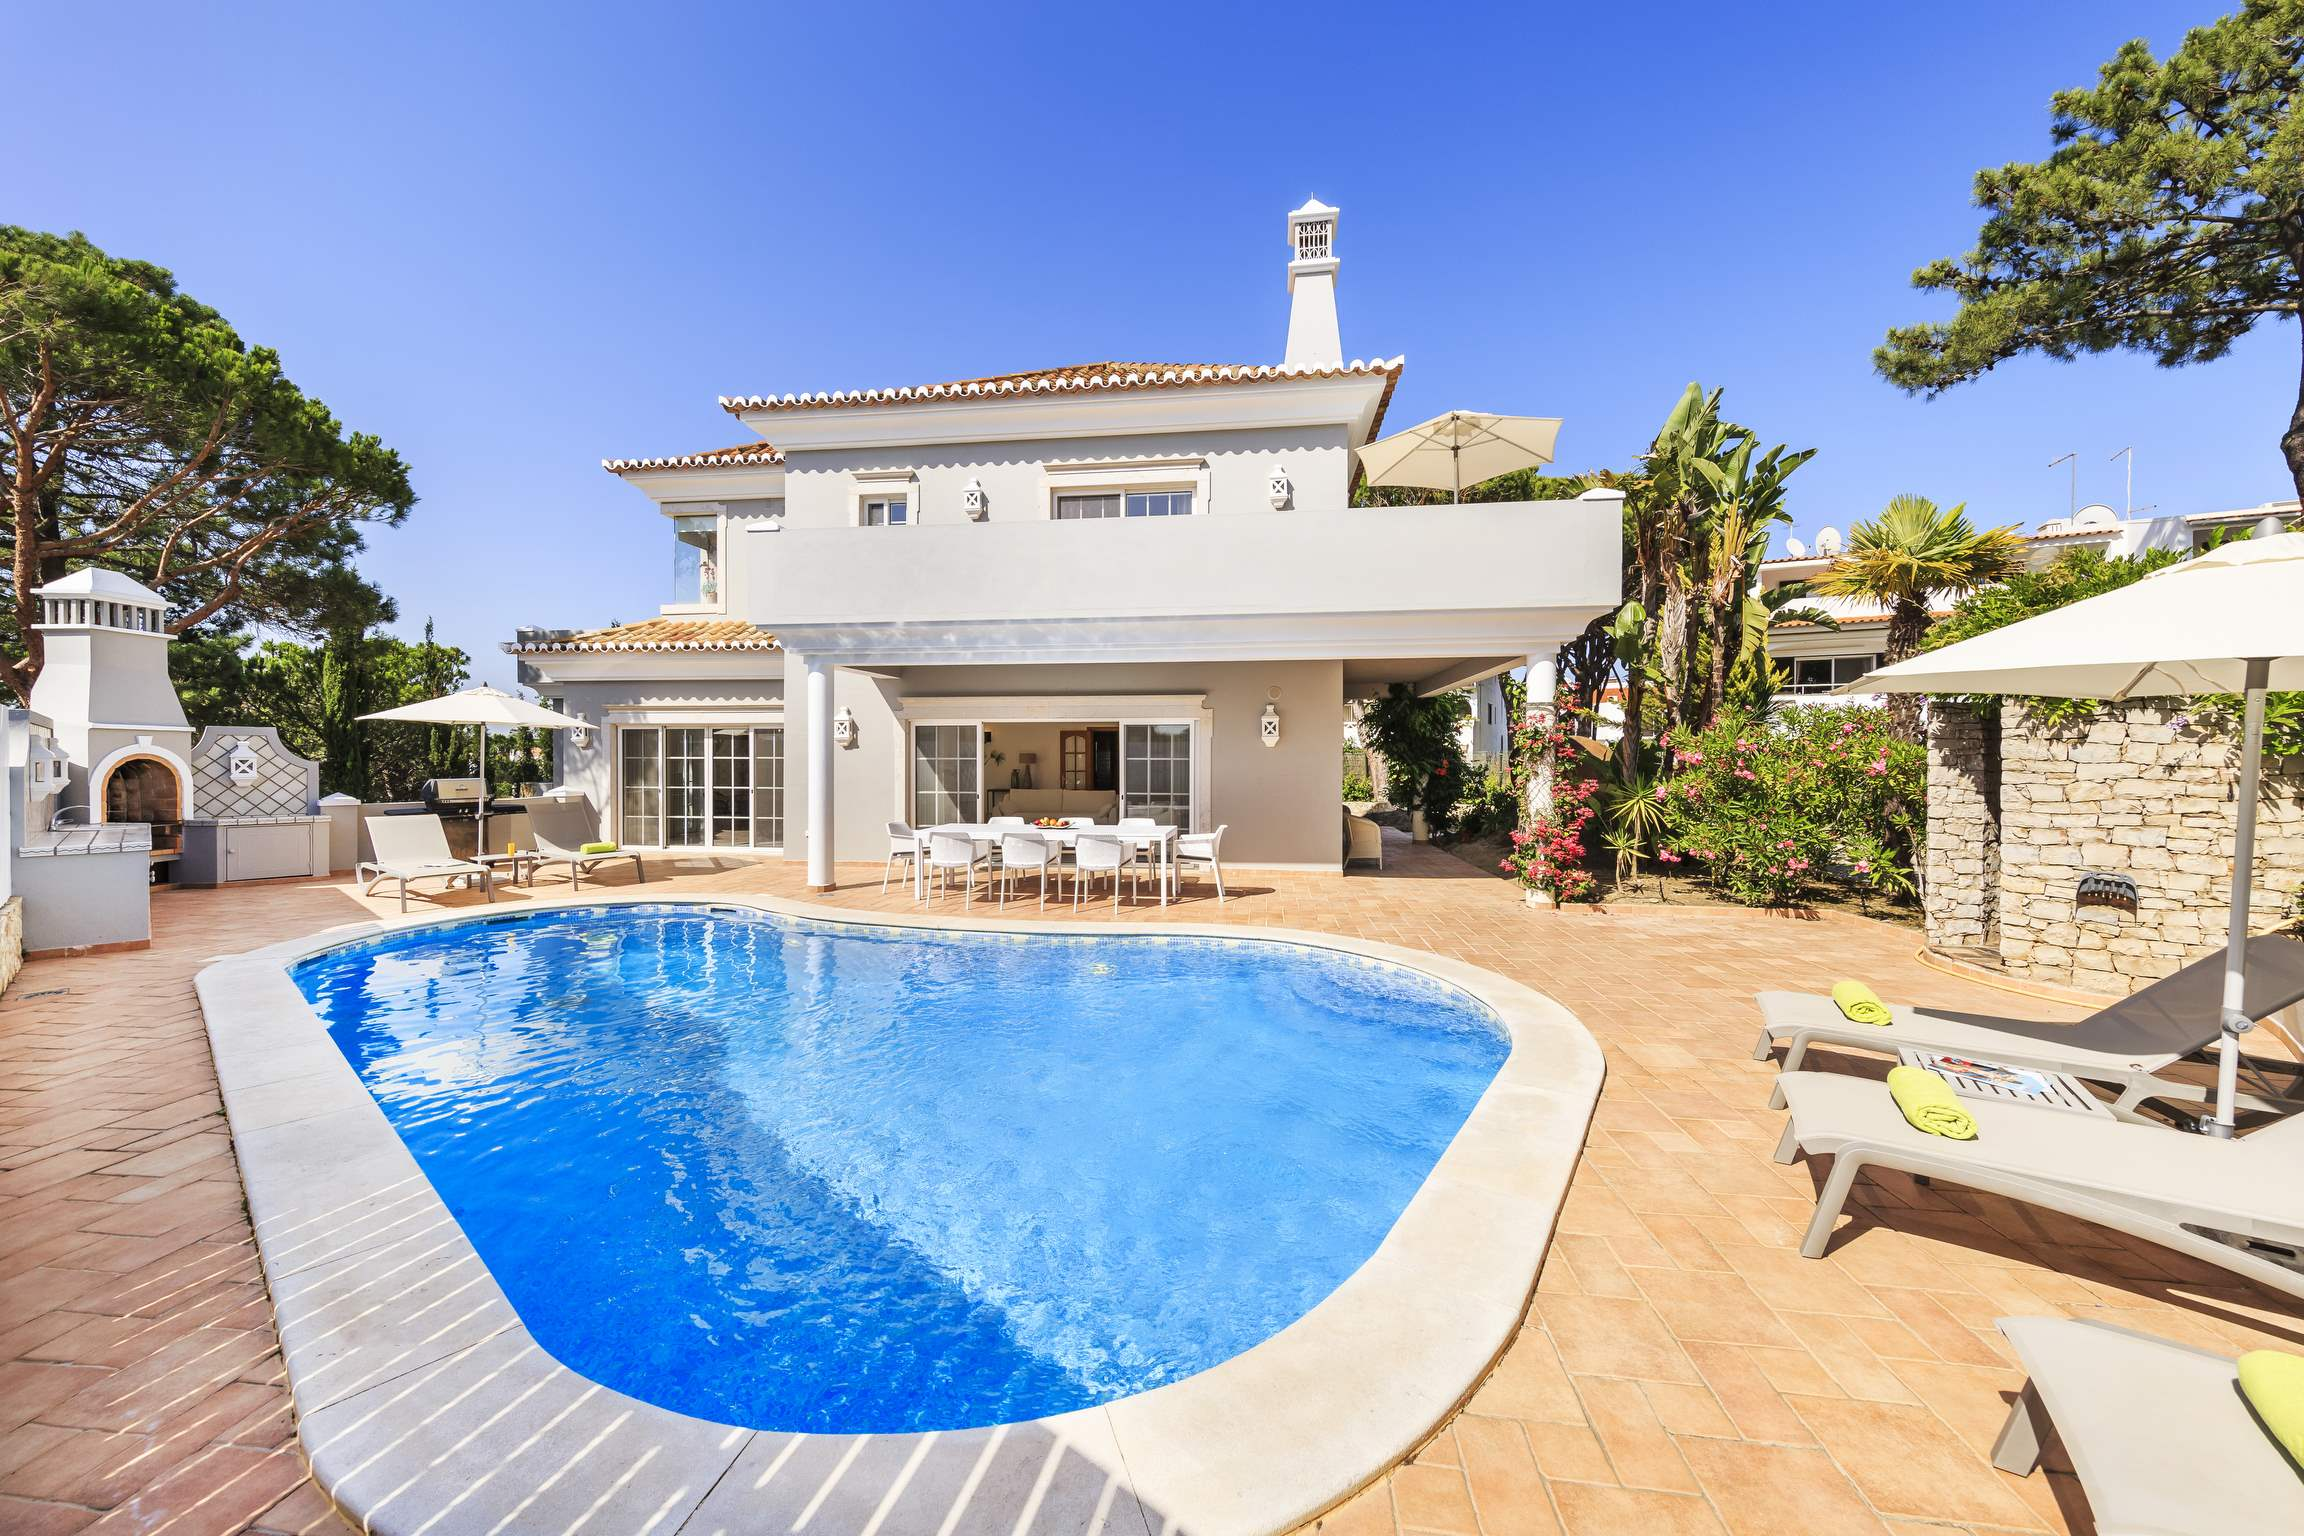 Casa Potes, 5 bedroom villa in Vale do Lobo, Algarve Photo #1